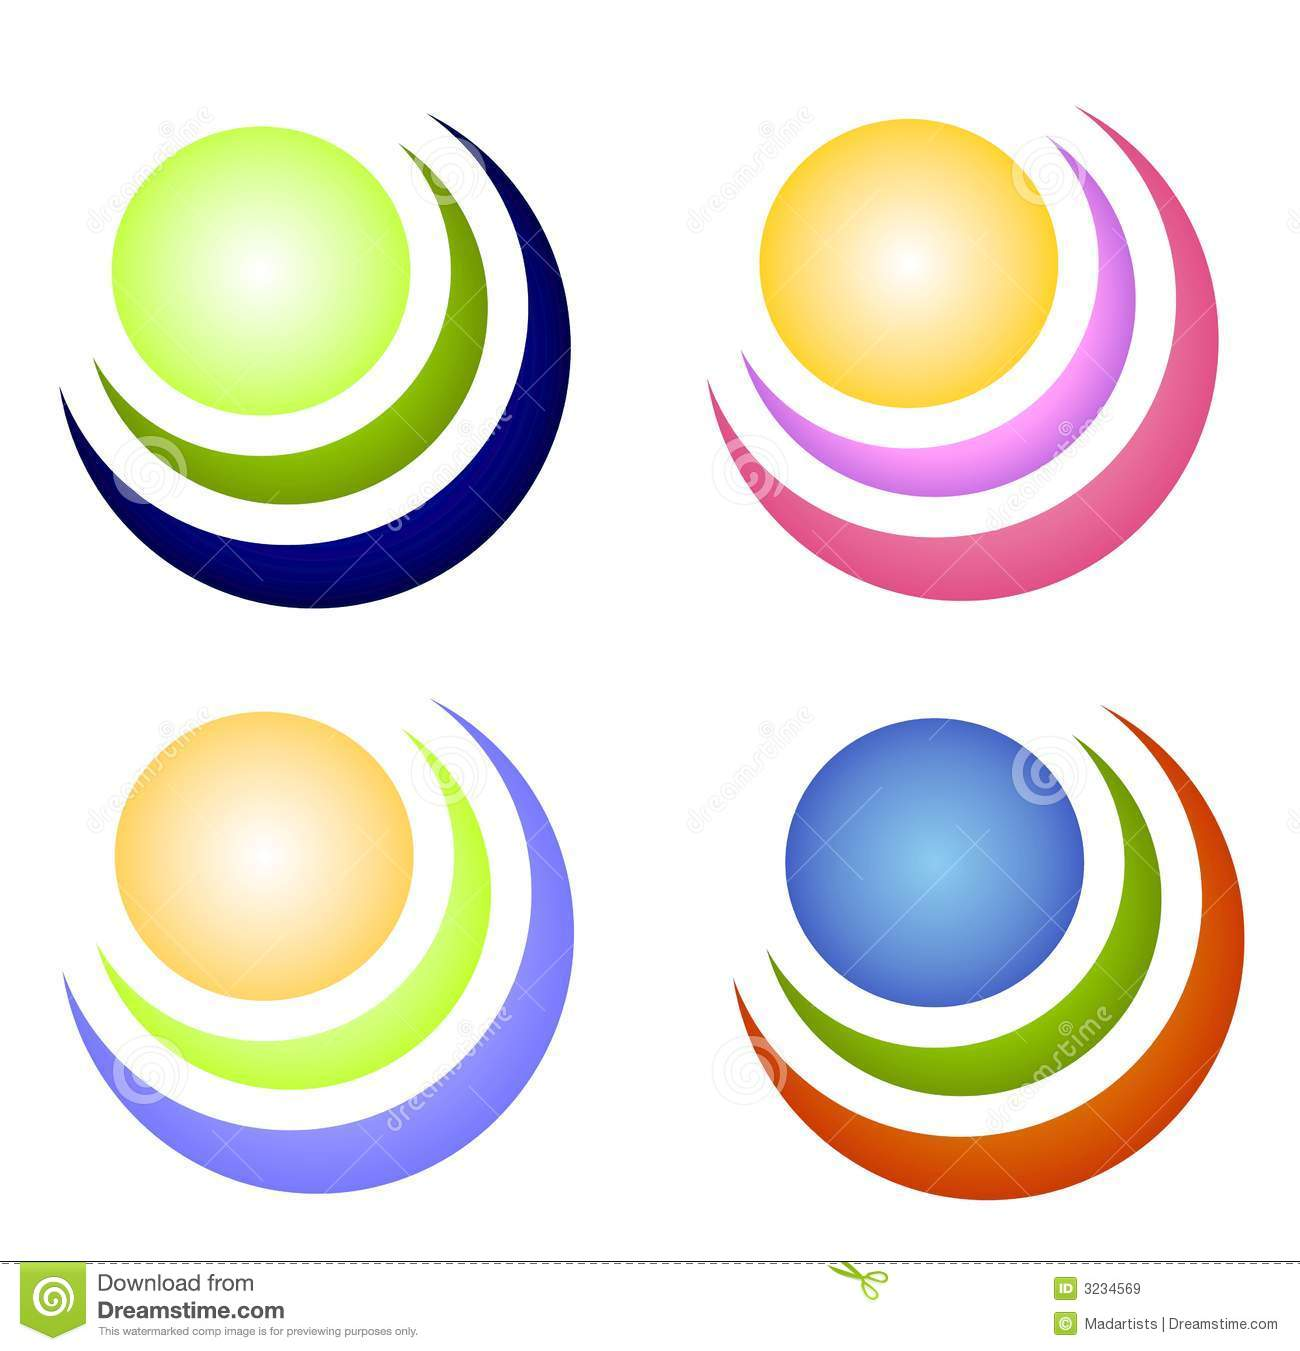 Colorful Circle Icons or Logos